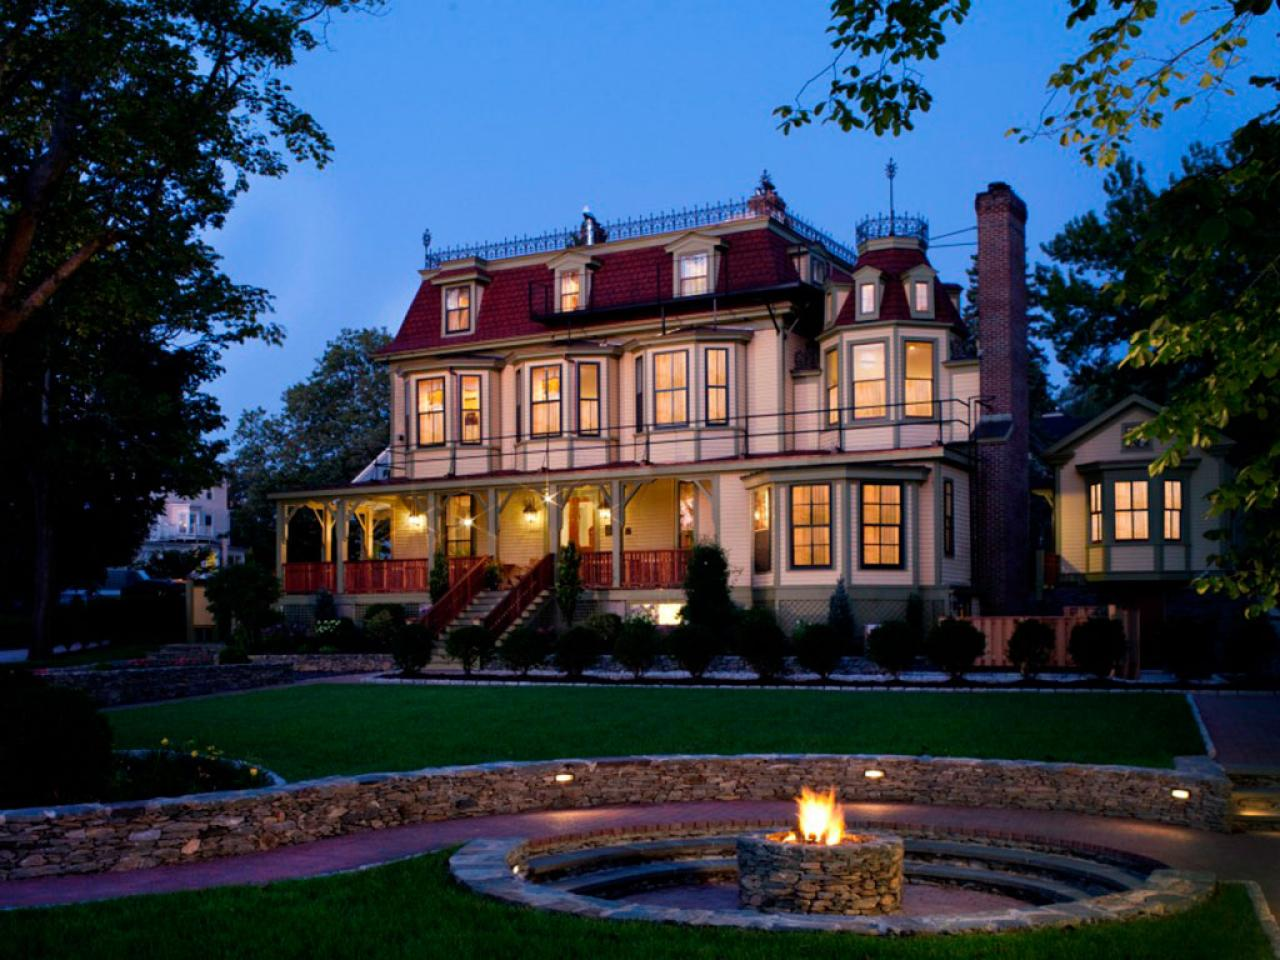 Top 10 New England Bed And Breakfasts Travel Channel